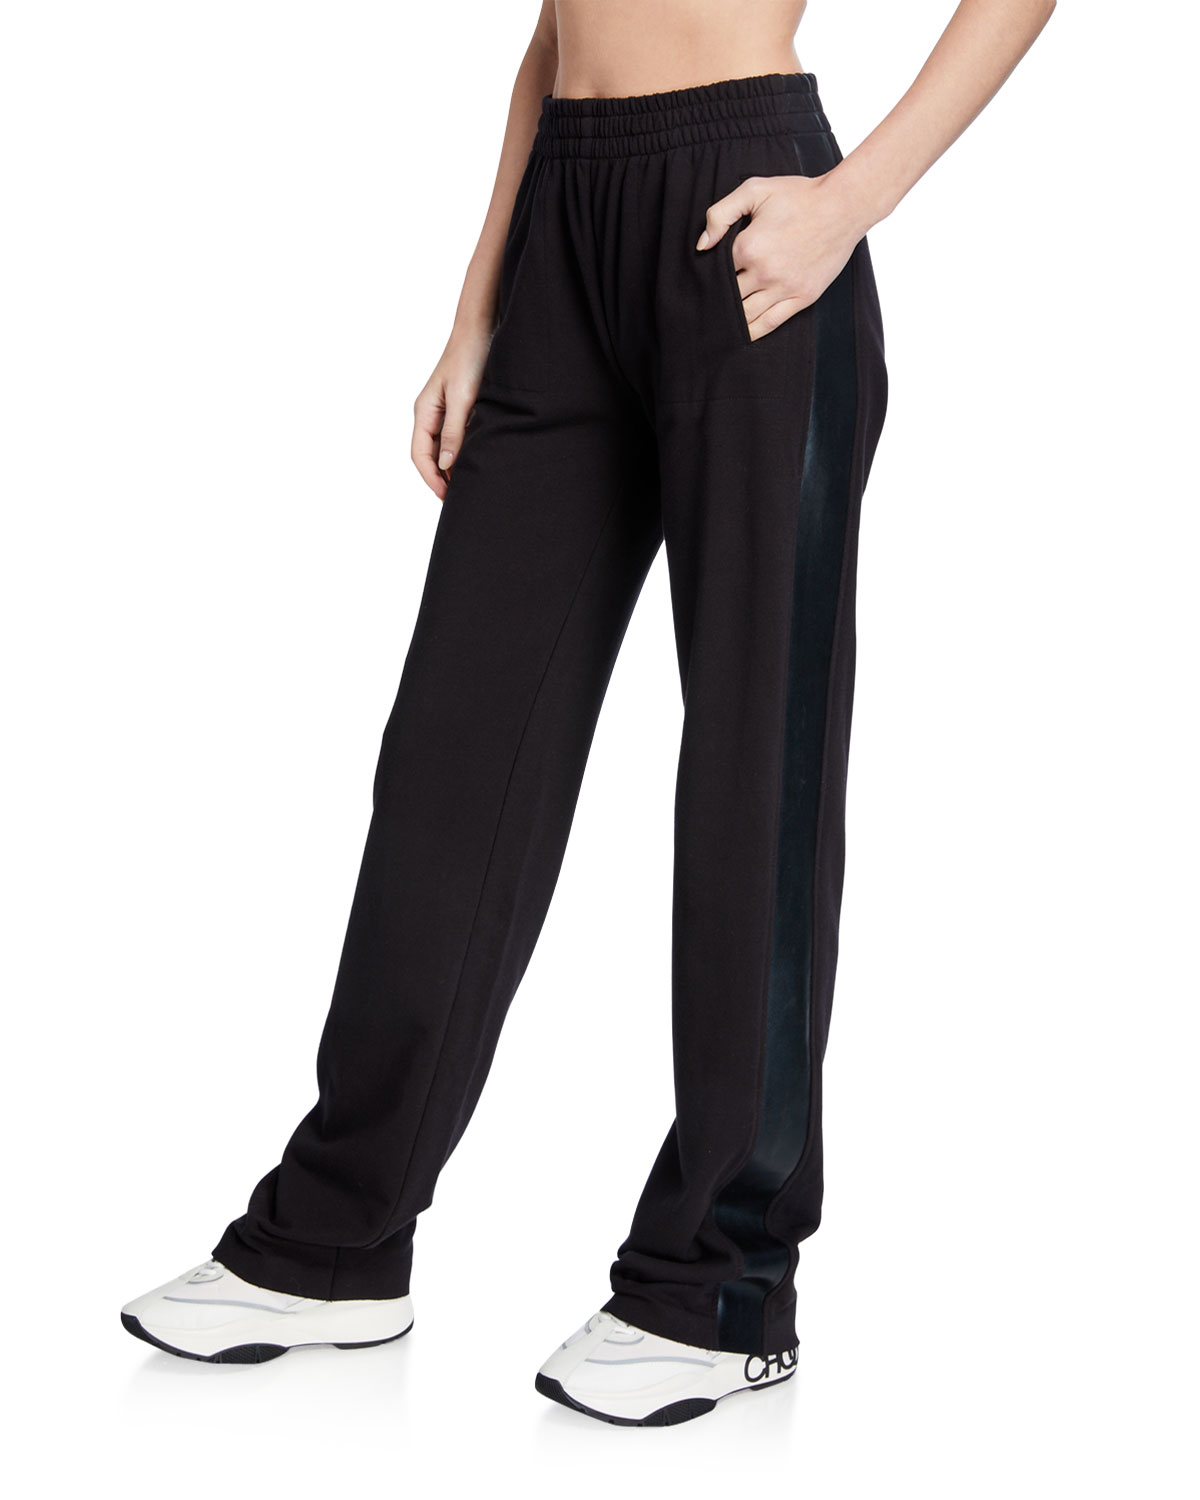 Norma Kamali Pants SIDE STRIPED BOYFRIEND SWEATPANTS